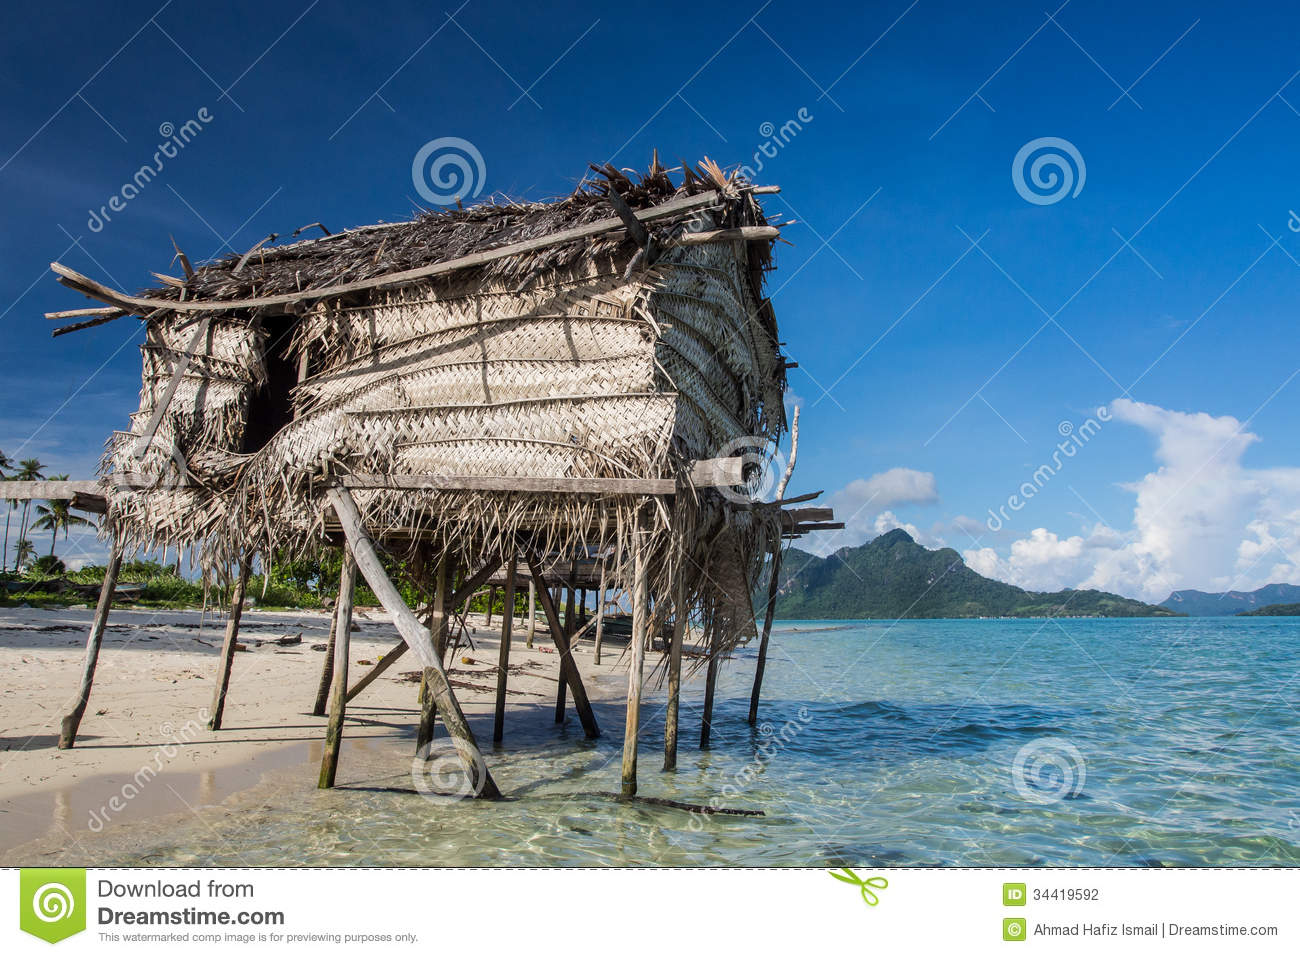 Wooden Houses on stilts Floating on the ocean